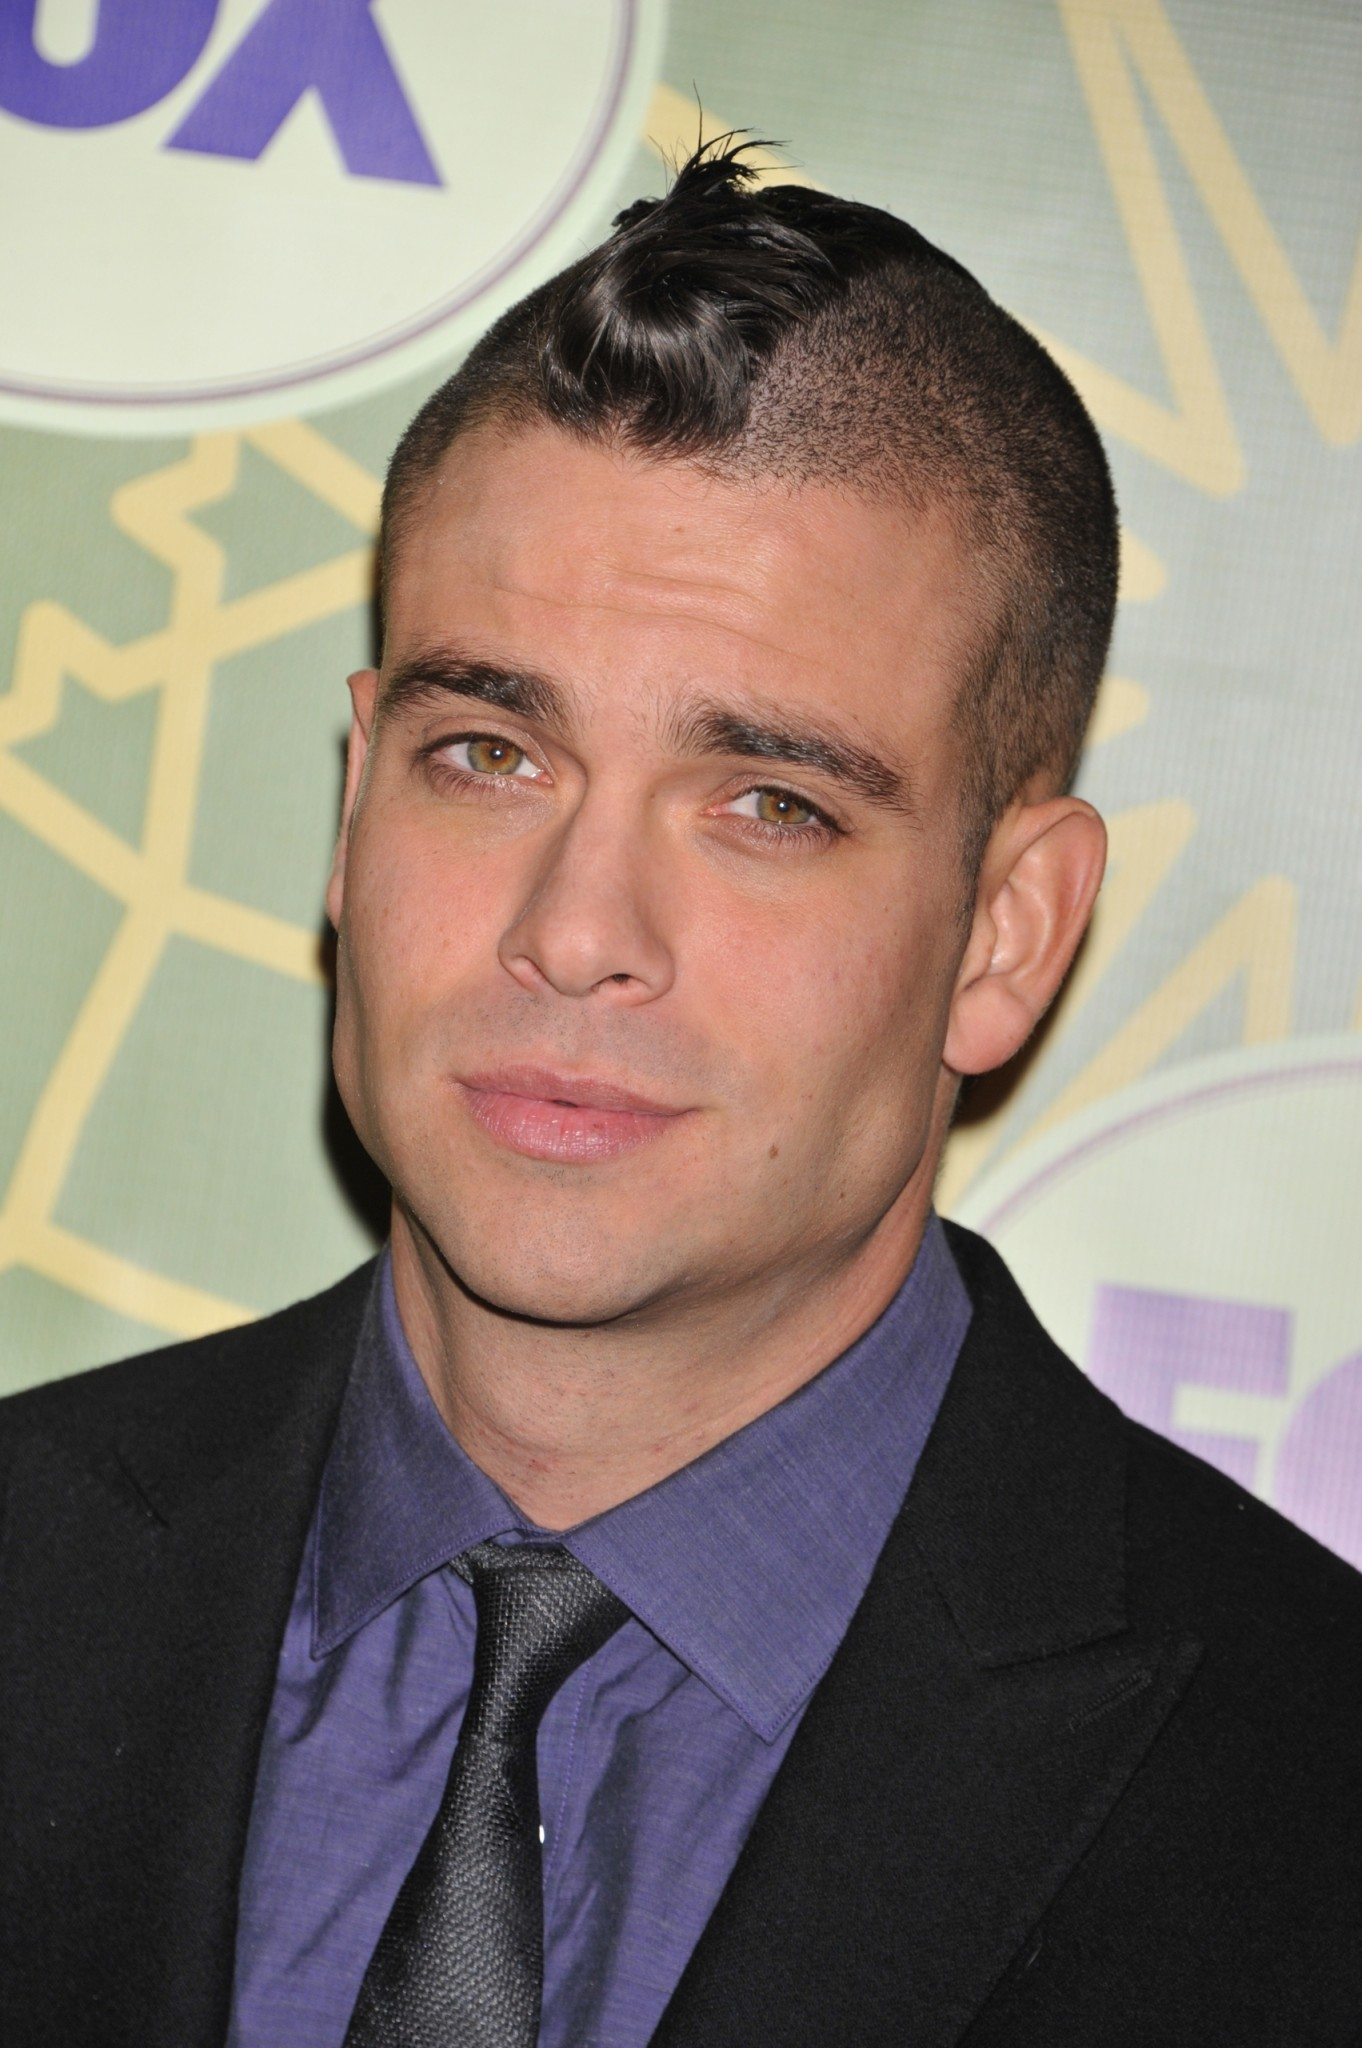 jogo de dating mark salling View mark salling pictures photo gallery including movies premiere, red carpets images and other event appearances pics of mark salling.